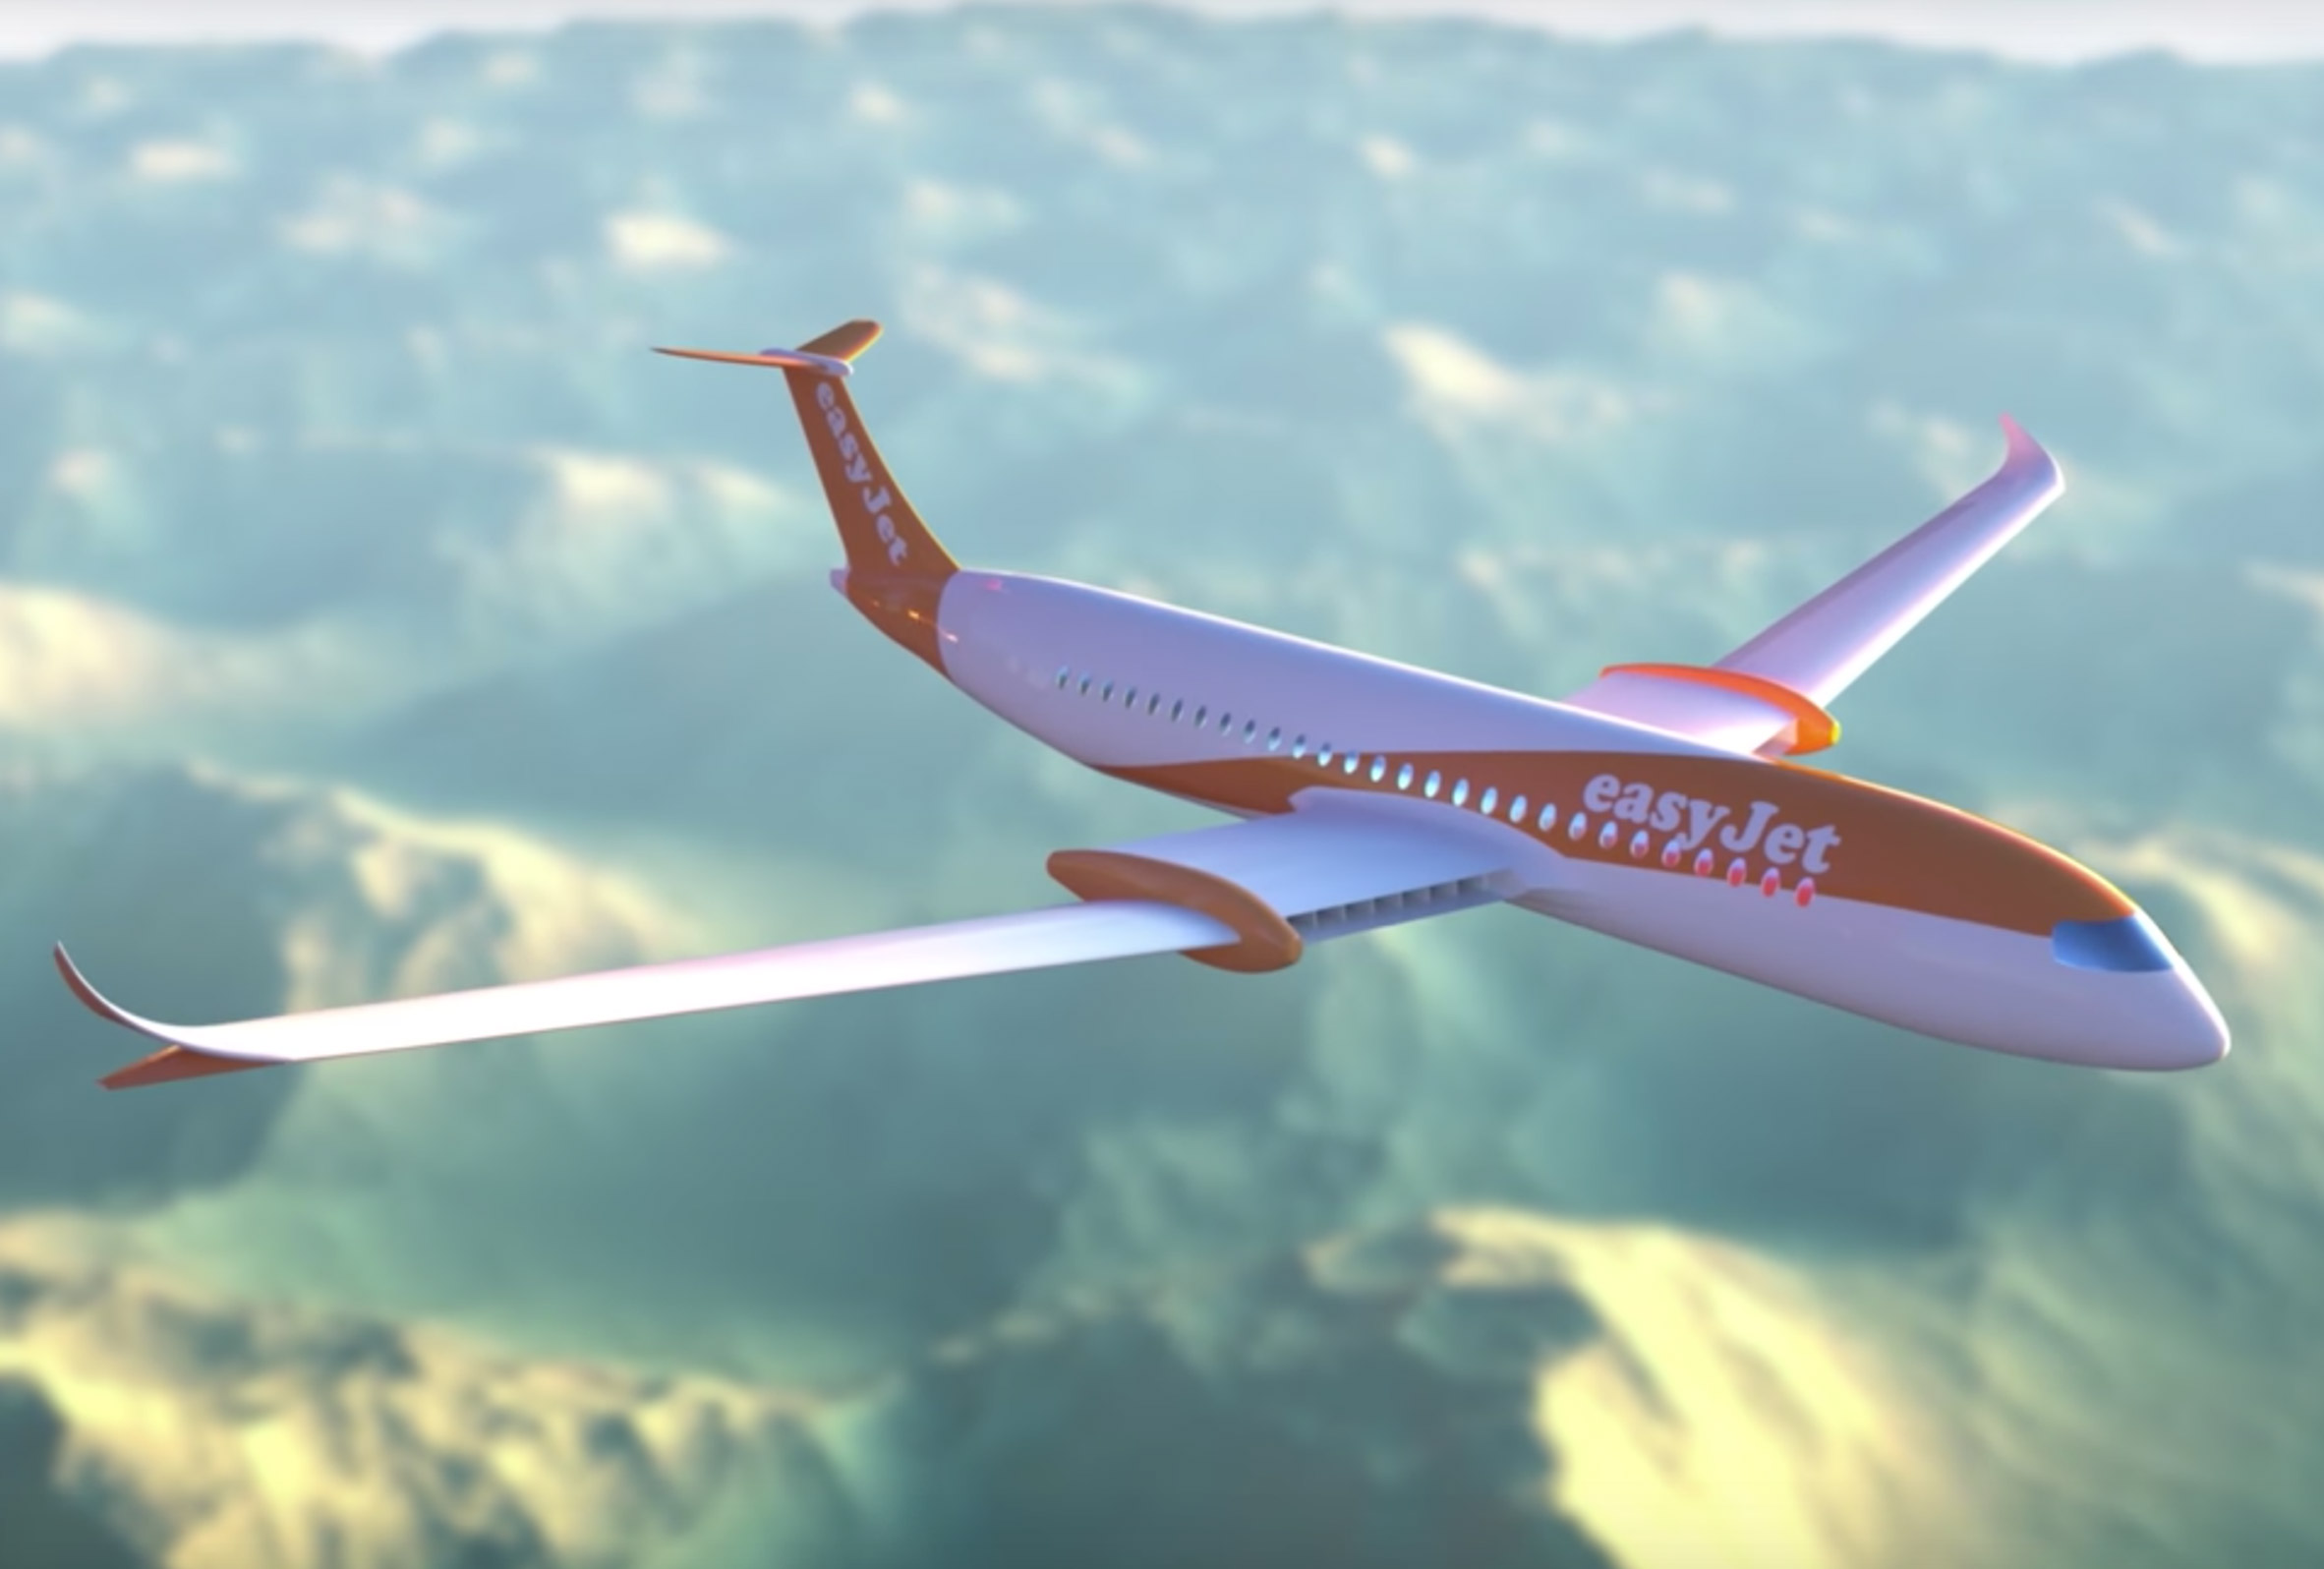 Solarplane Pool Willhaben Easyjet To Fly Battery Powered Planes Within The Next Decade